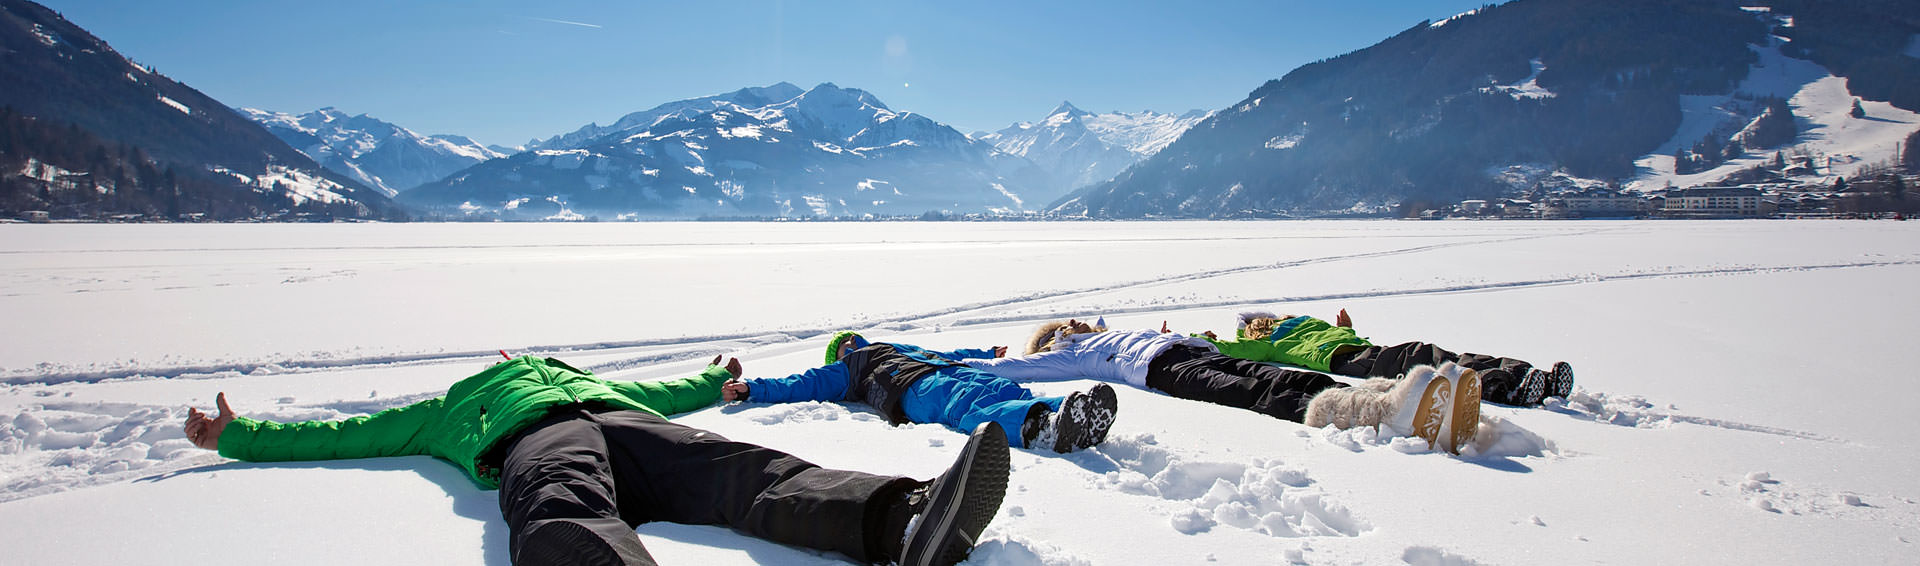 Family lies in snow at perfect weather